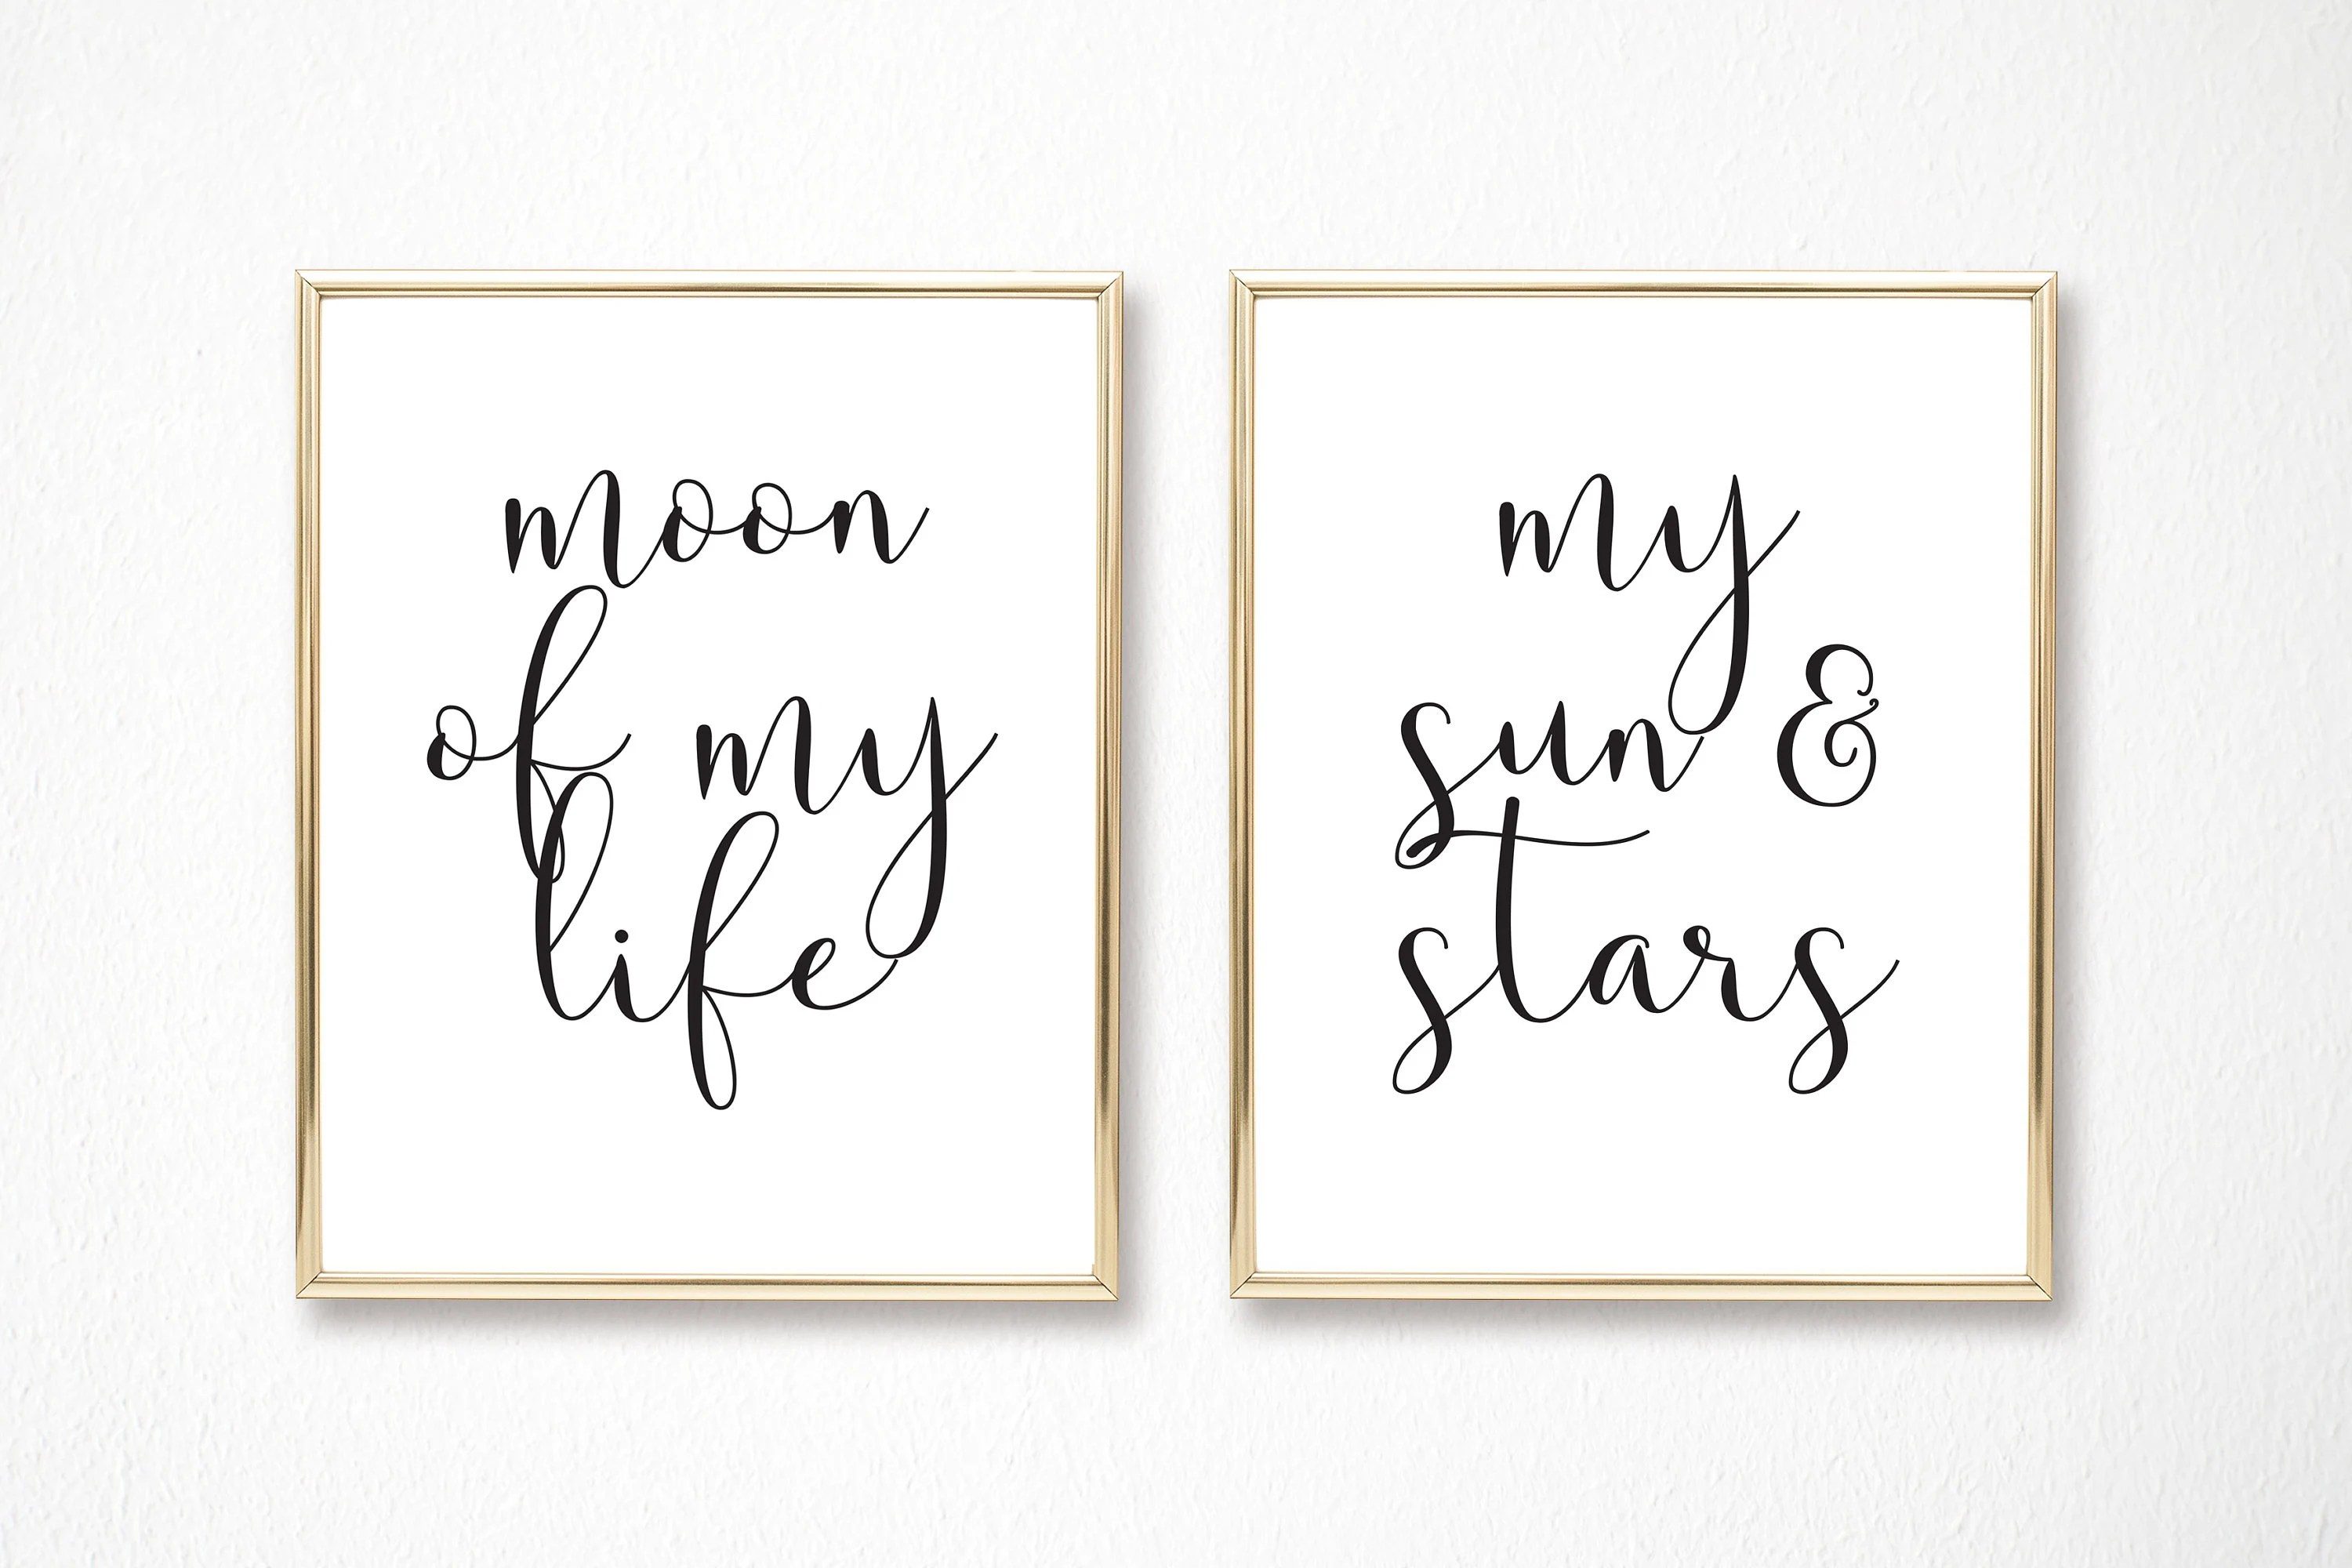 moon of my life my sun stars poster game of thrones poster my sun and stars poster game of thrones art game of thrones gift